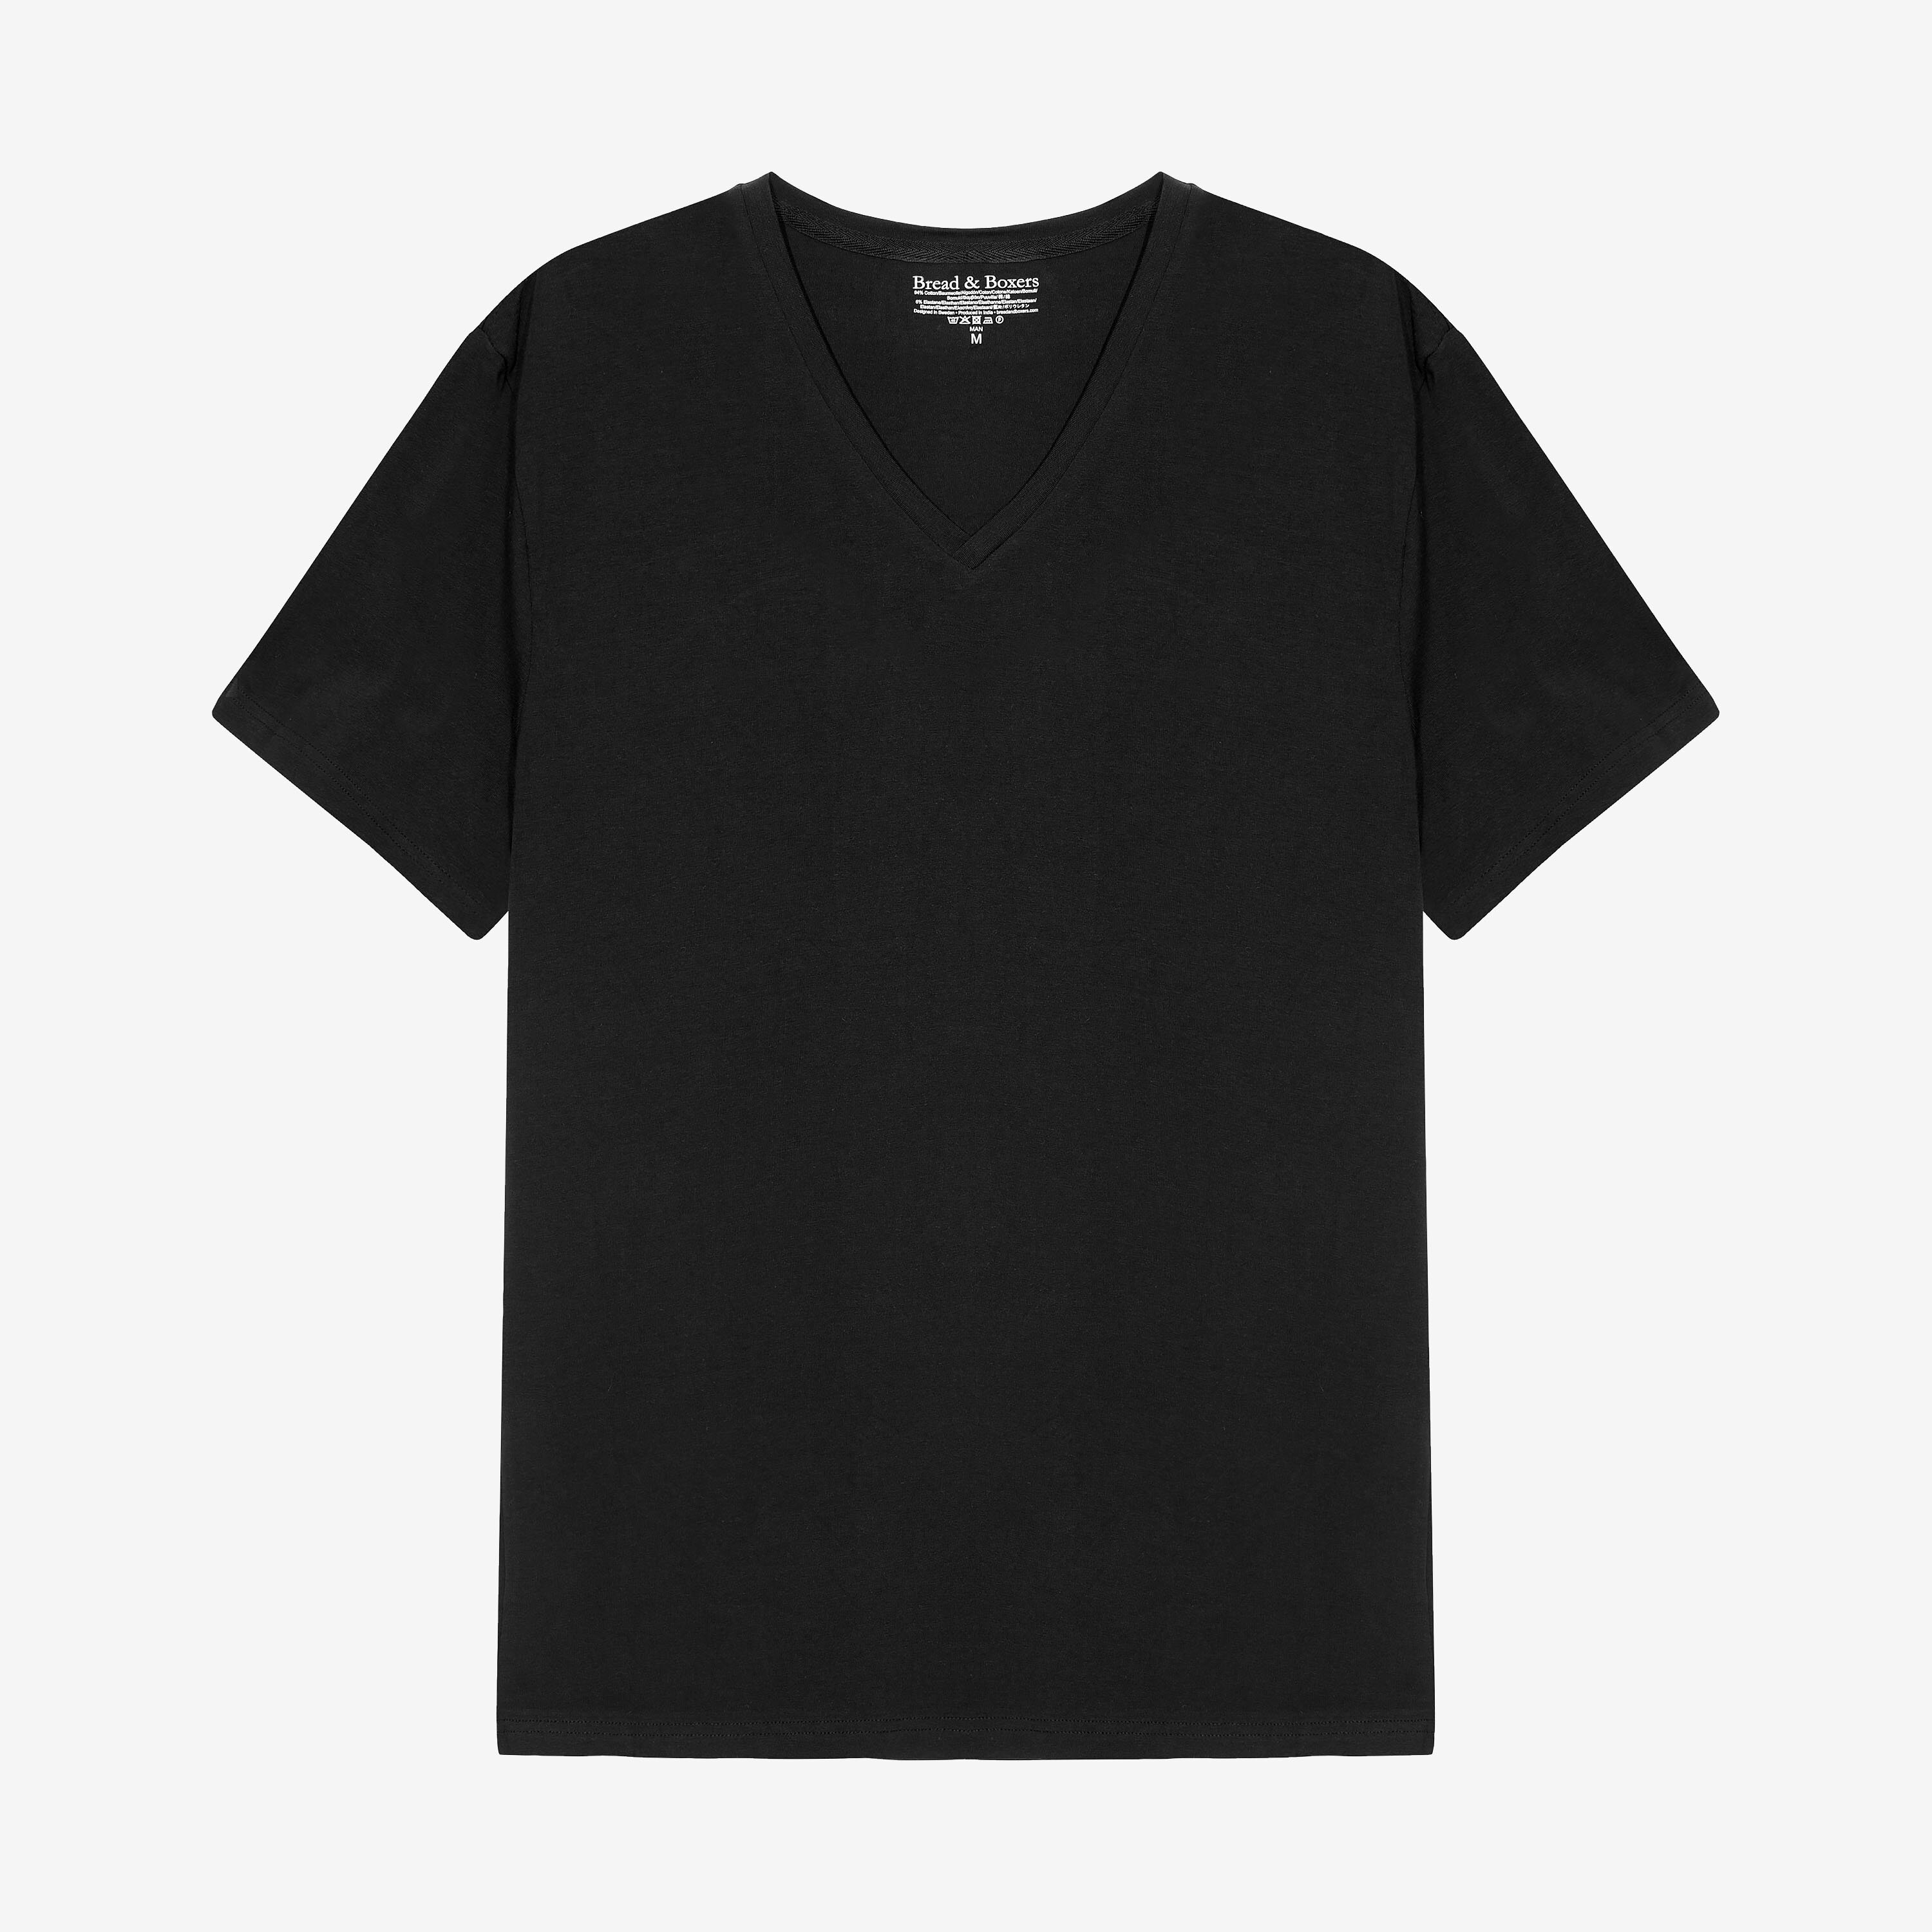 102202_Man_V-Neck_black_CO